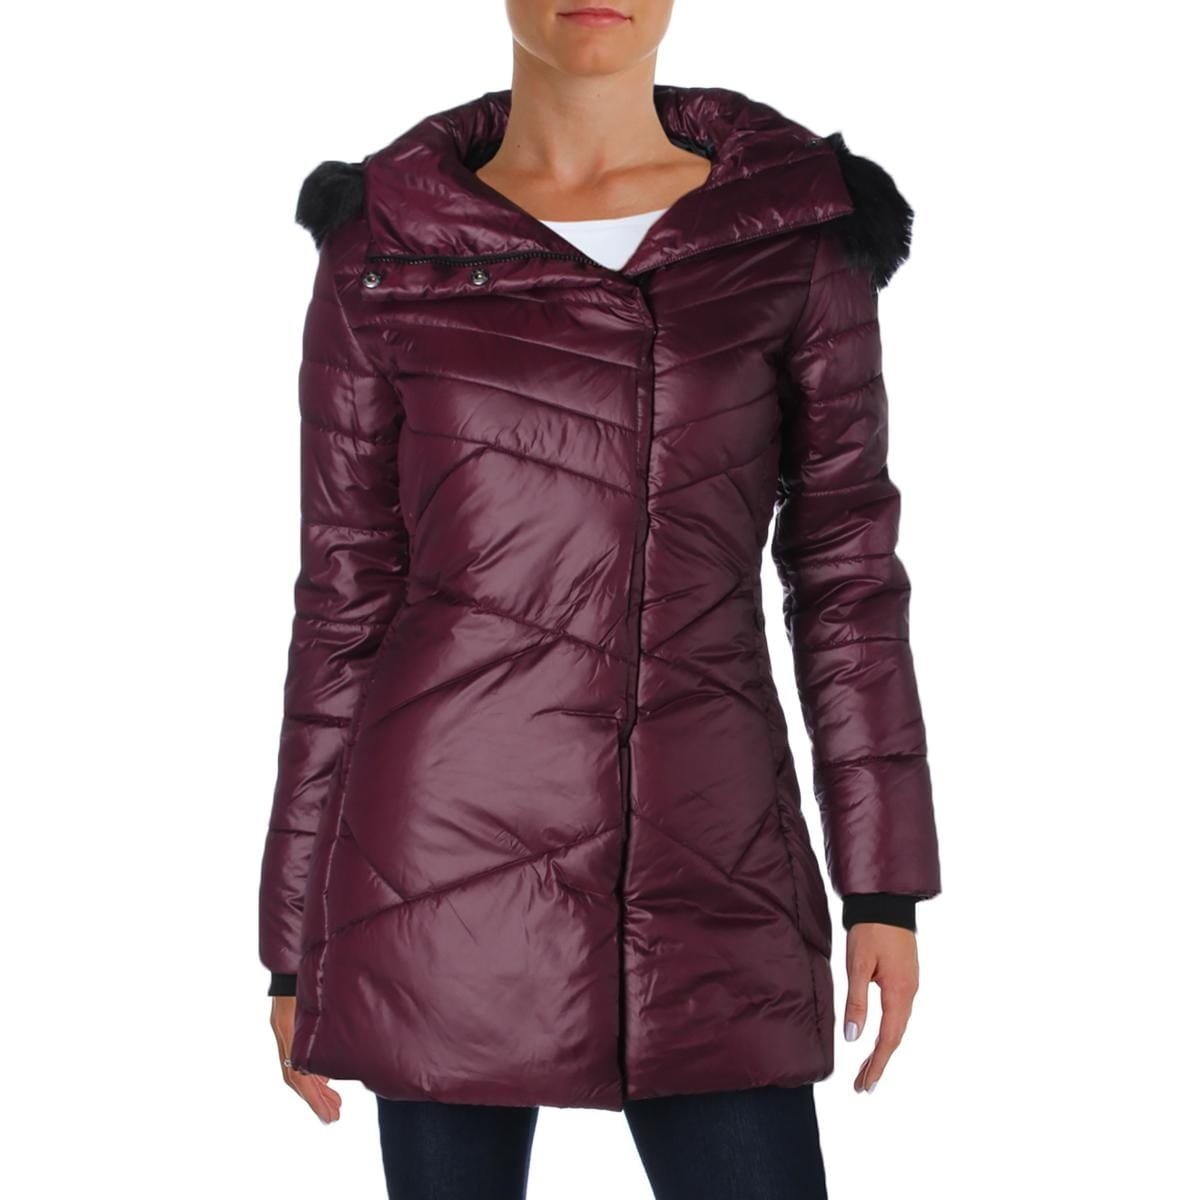 of ease nmajhnj the and barn sediment clothing outerwear s drapes barns jackets loosely casual women body womens coats movement jacket over c dorrington comfort p for woolrich